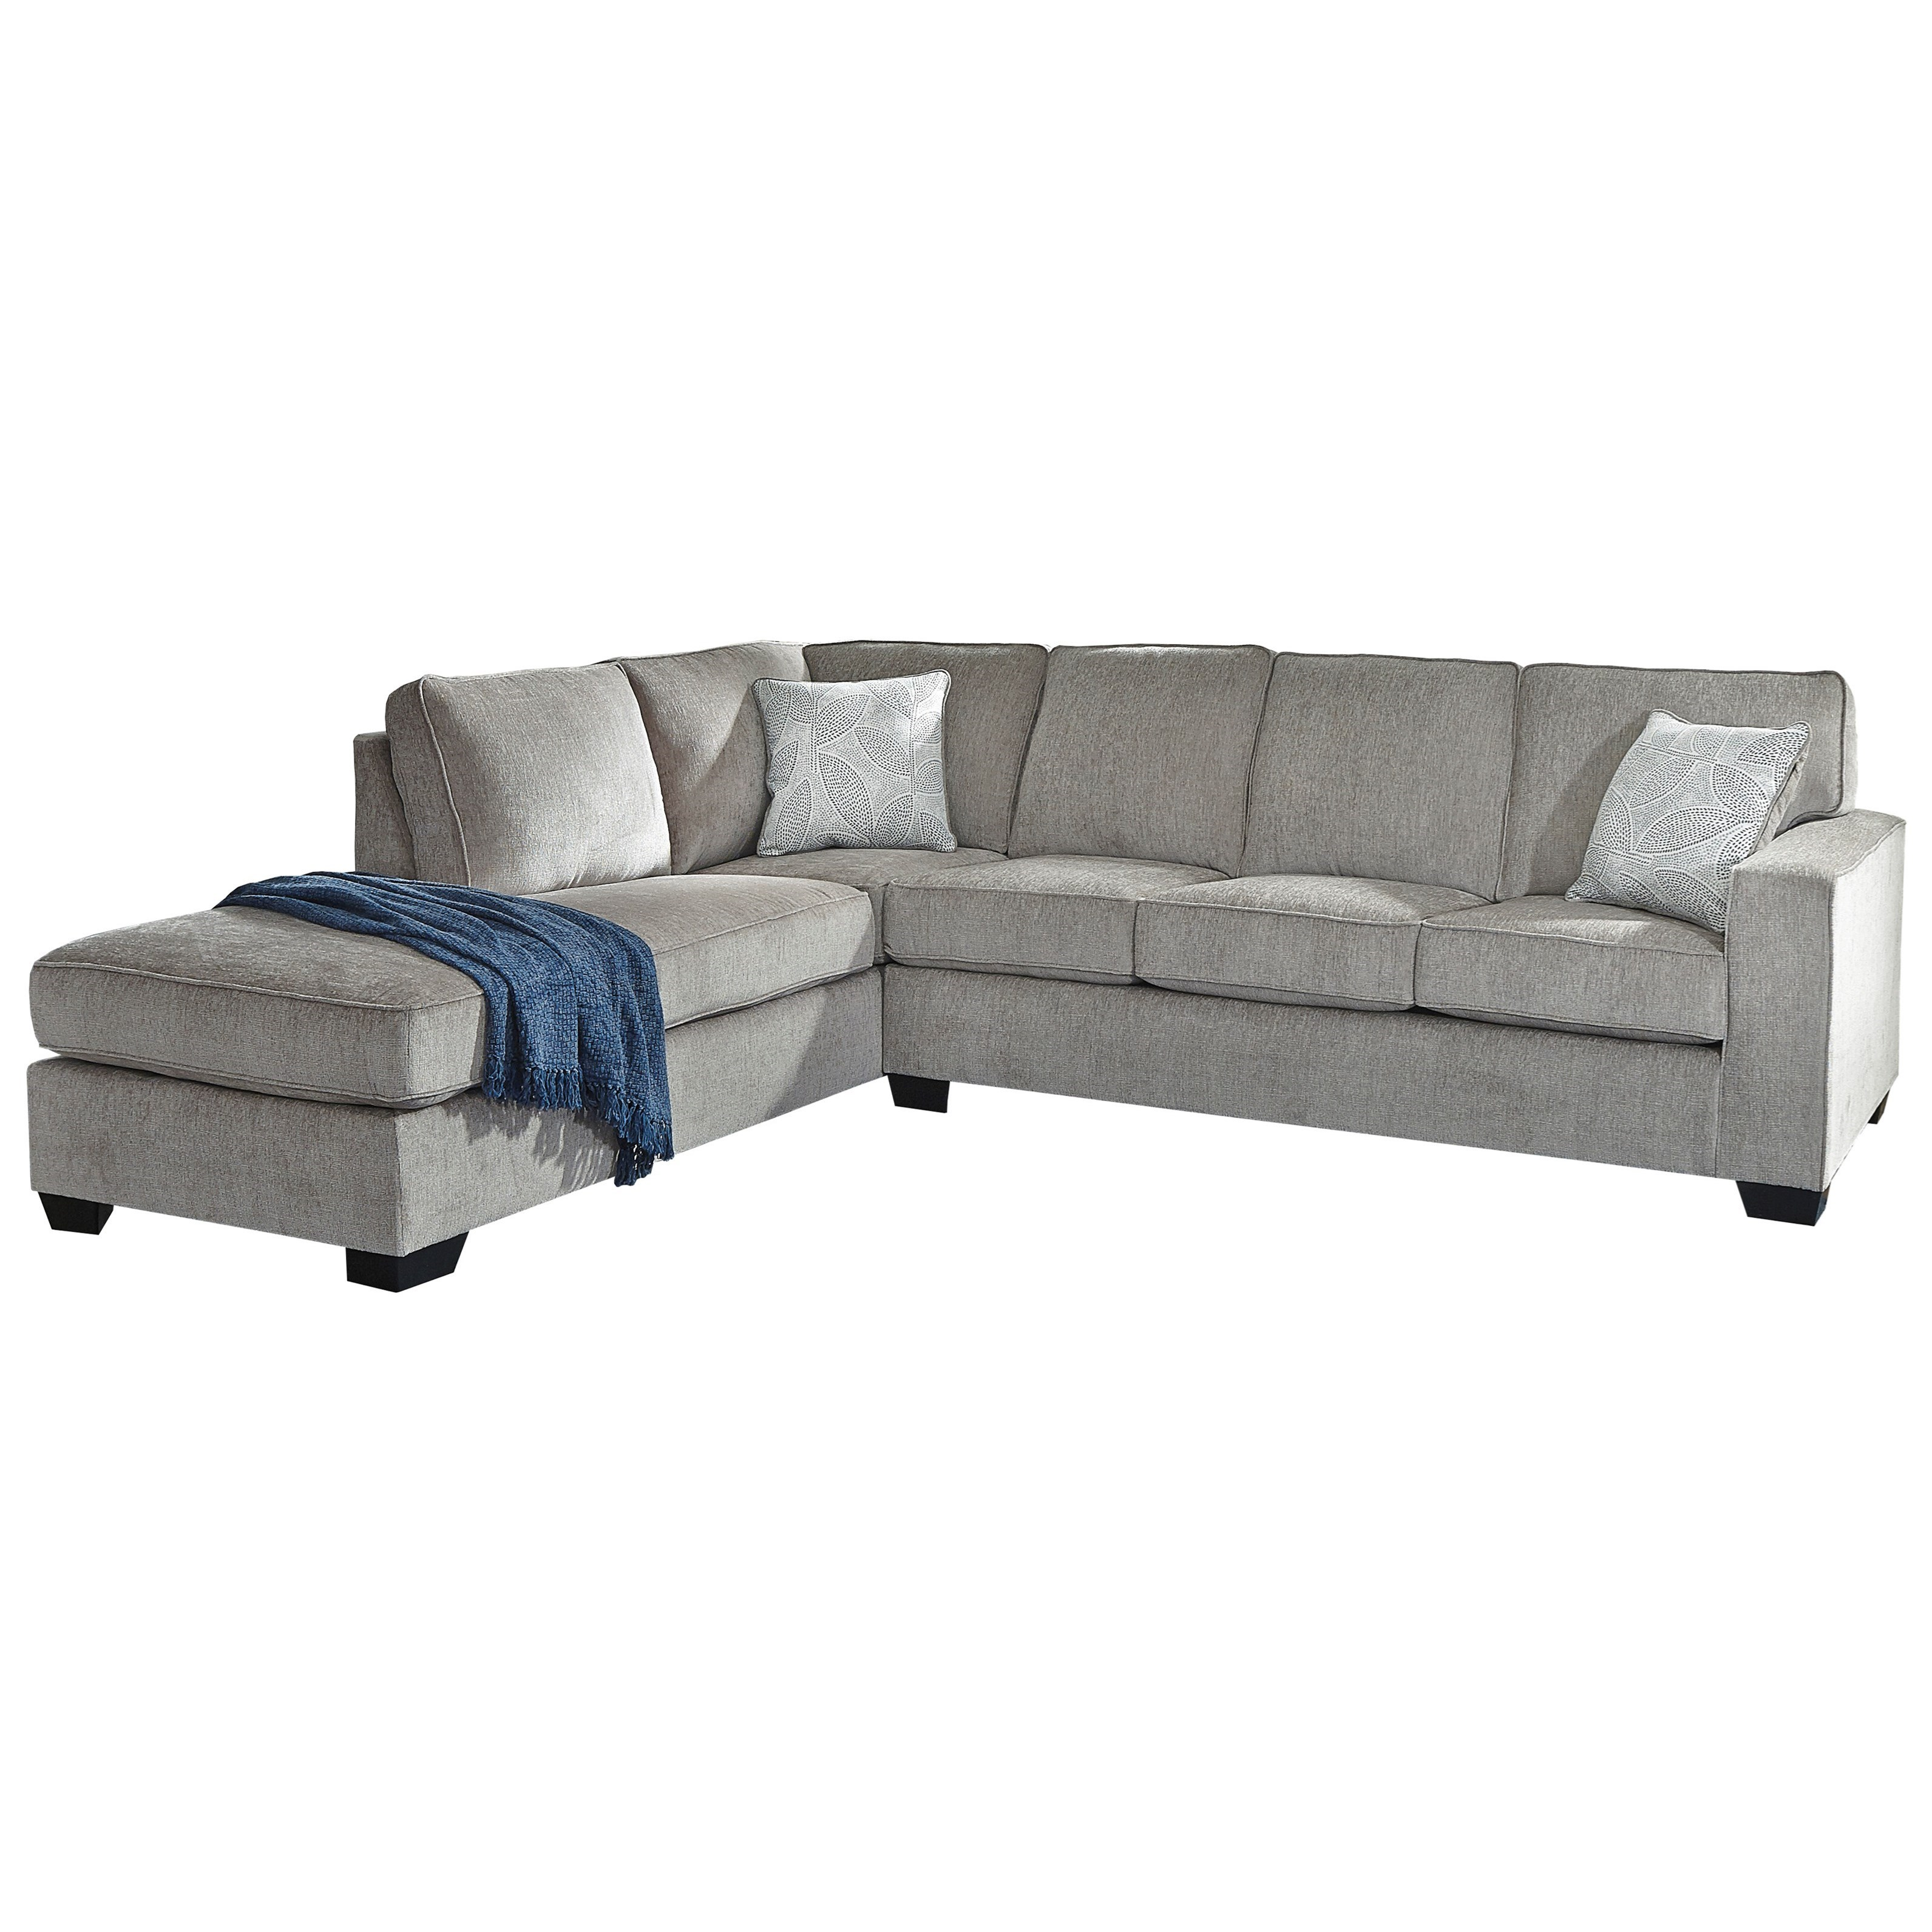 Sleeper Sectional with Chaise